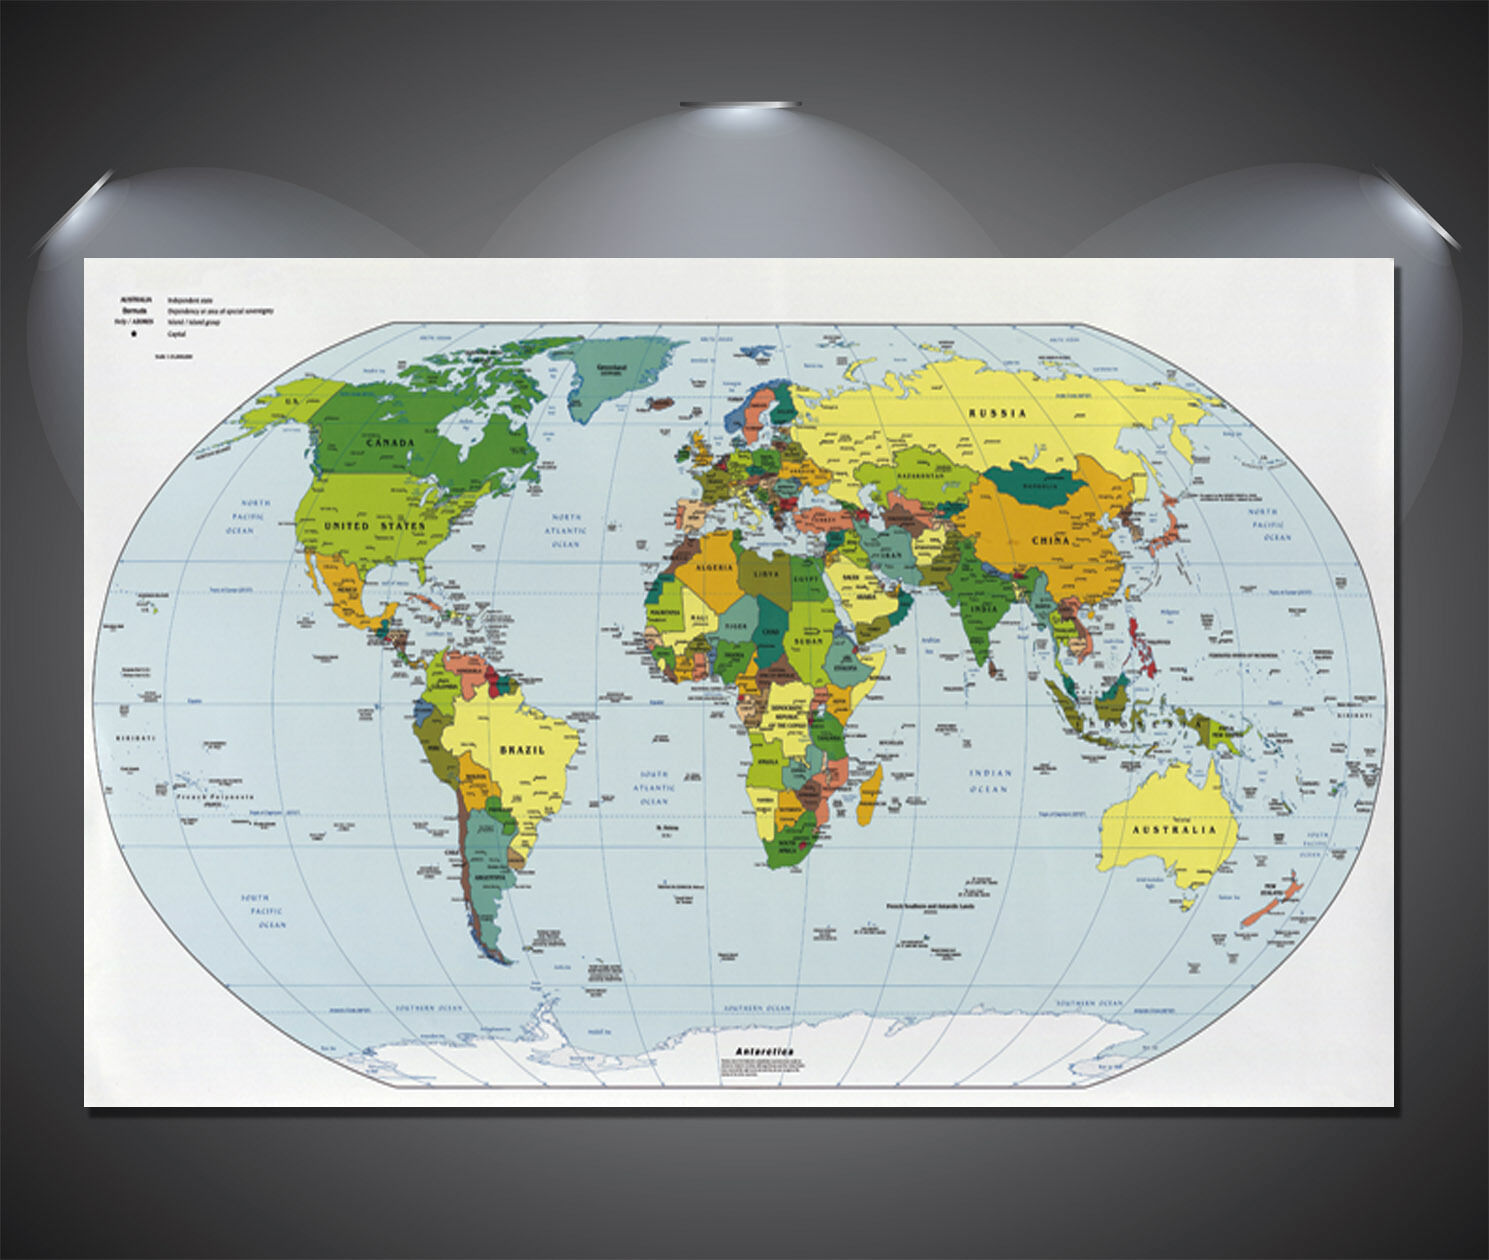 World map giant poster a0 a1 a2 a3 a4 sizes 185 picclick uk 1 of 1free shipping gumiabroncs Choice Image